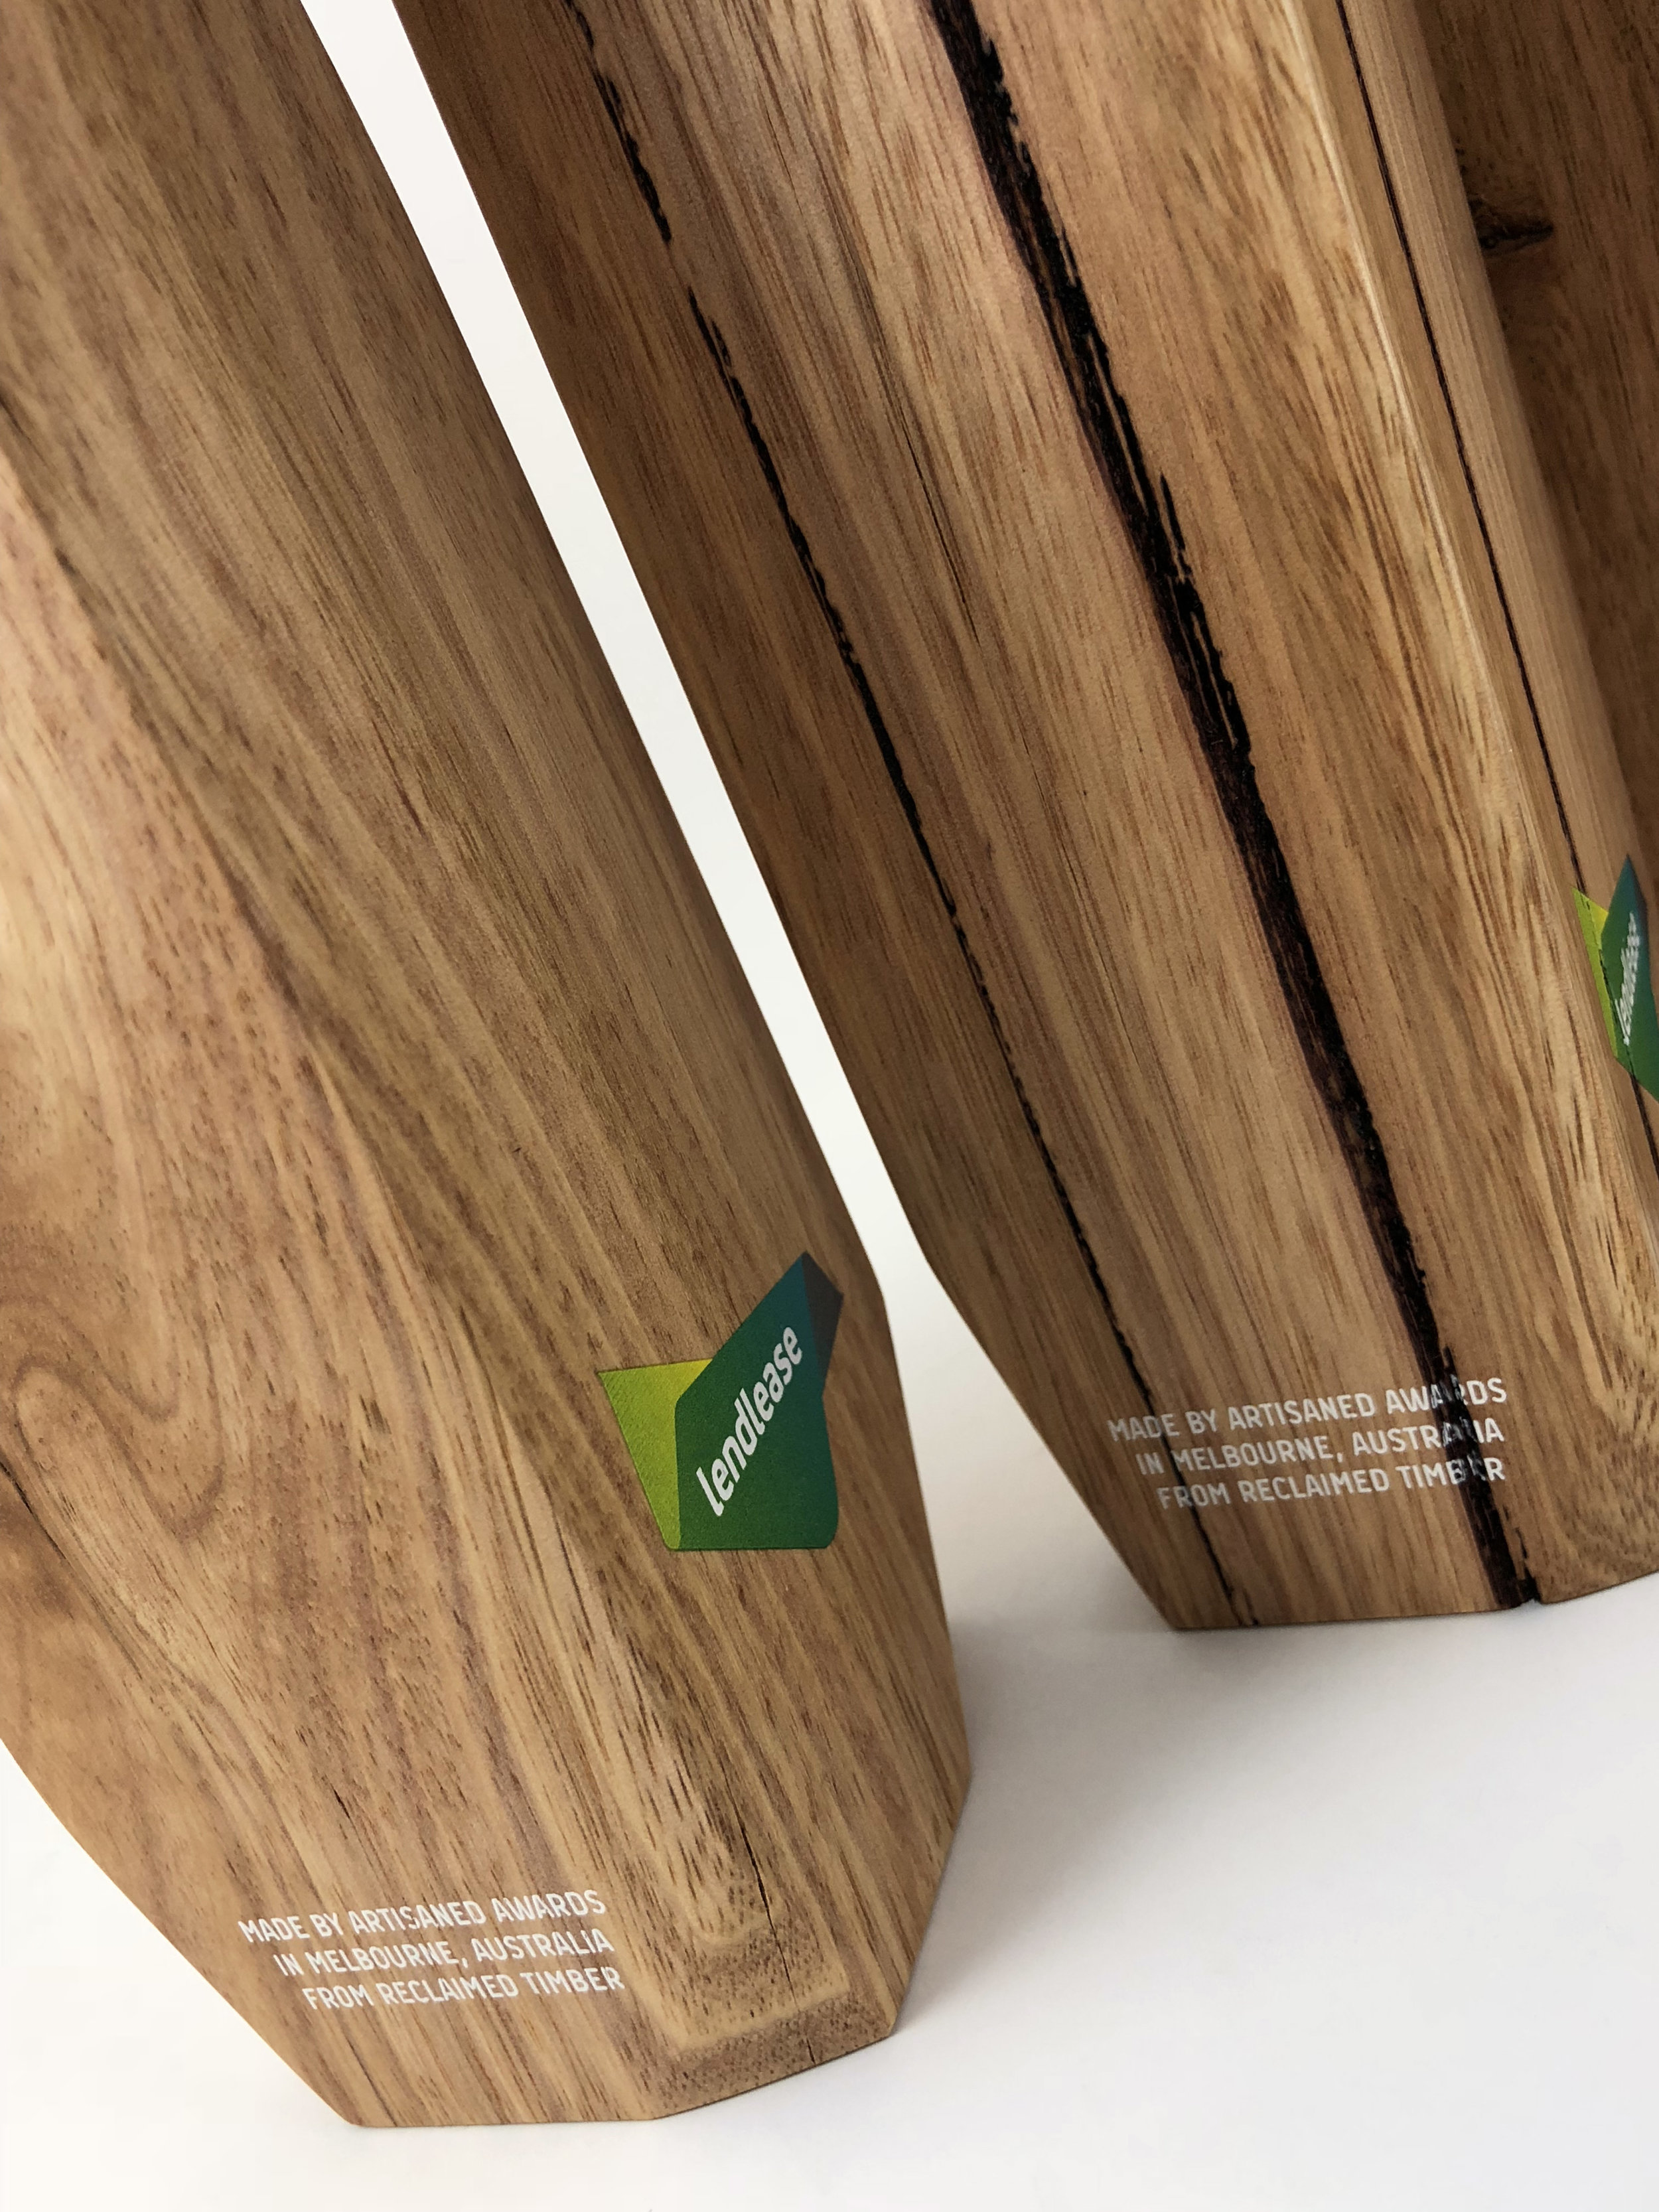 lendlease-reclaimed-timber-awards-trophy-06.jpg